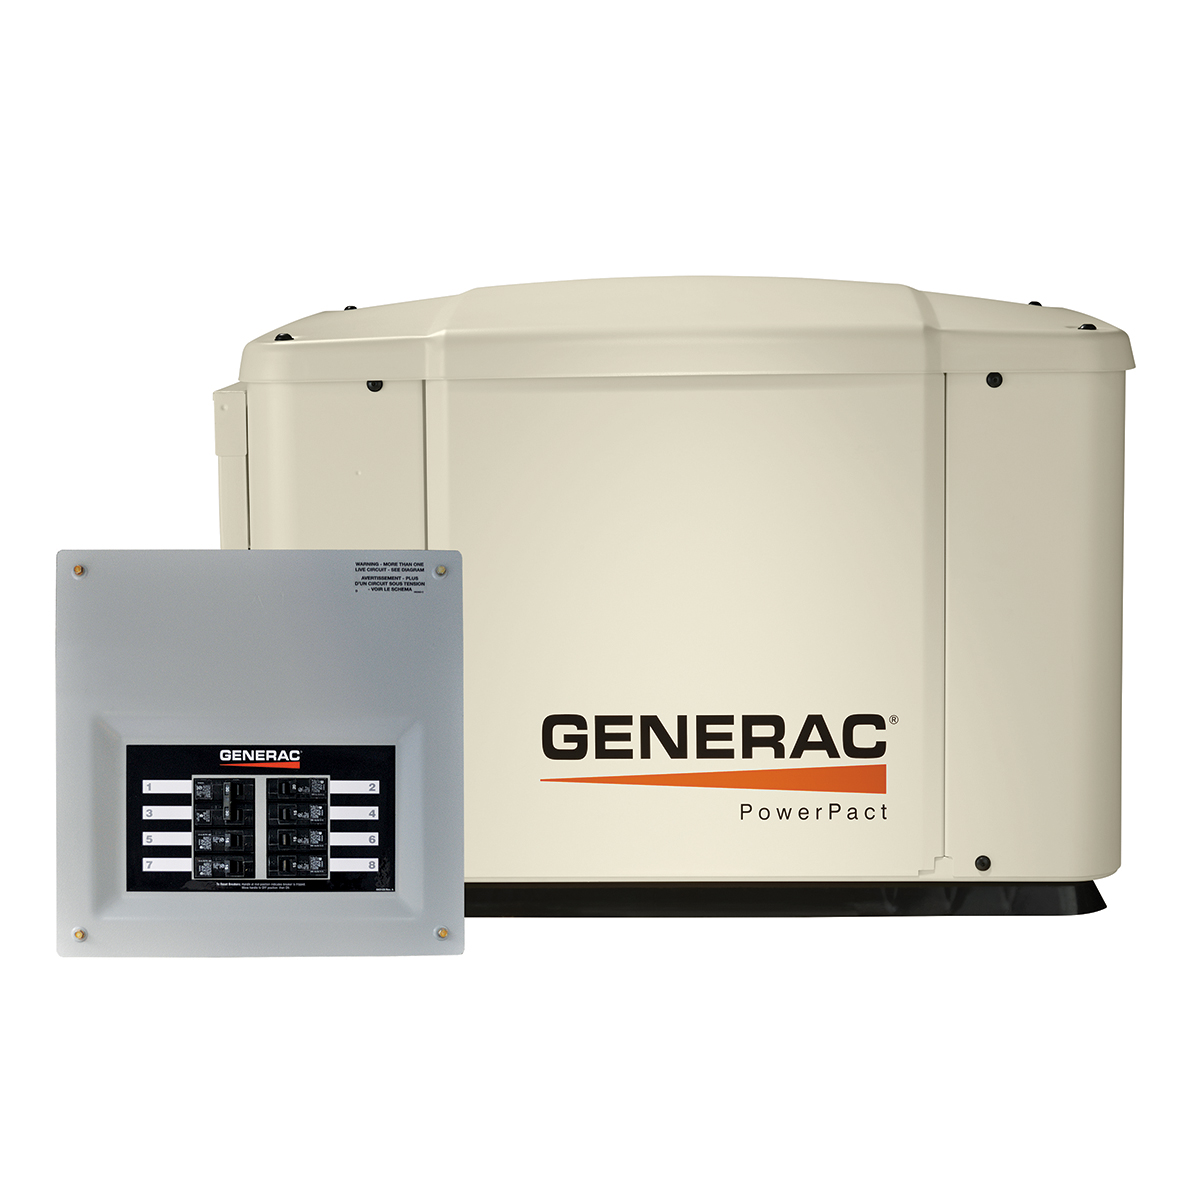 Natural Gas Propane Generators Absolute Power Ltd 20 Kw Generac Generator Wiring Diagram Air Cooled Guardian Series